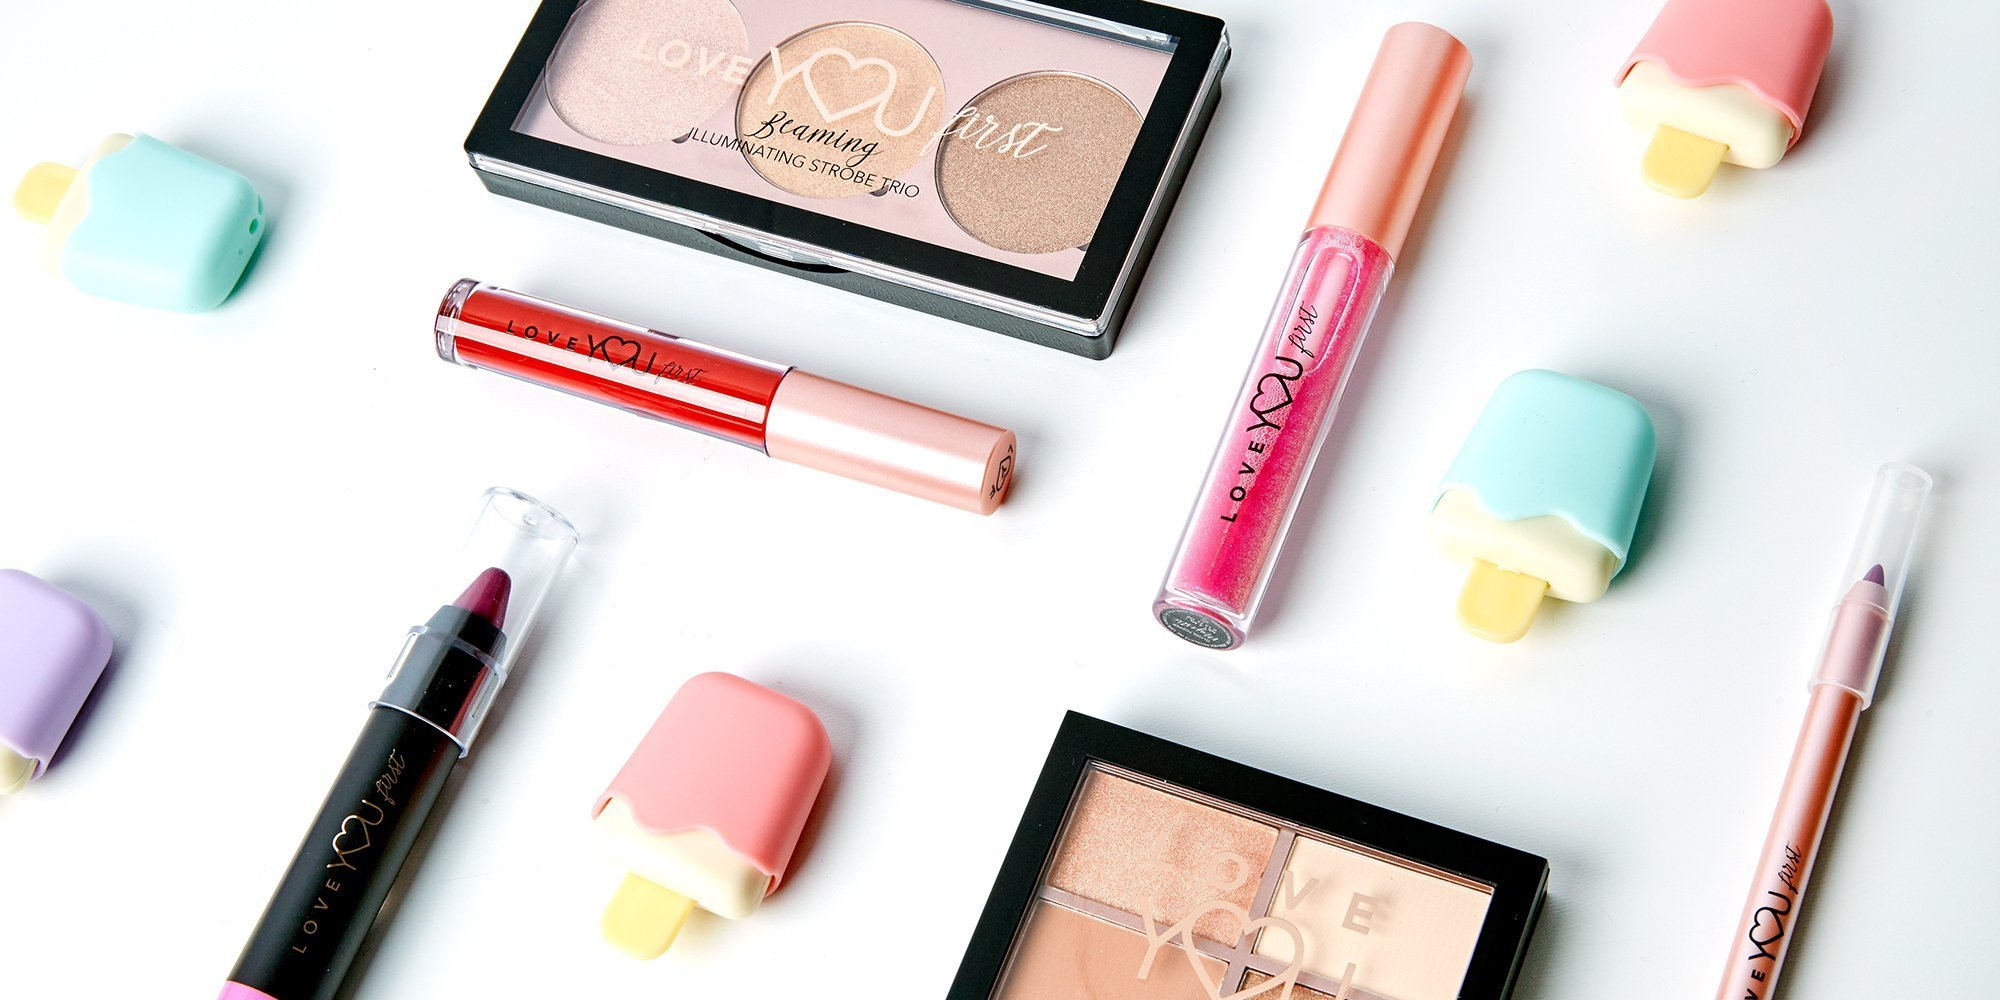 Launching At Target, Makeup Brand Love You First Has A Confidence-Boosting Message For Teens And Tweens